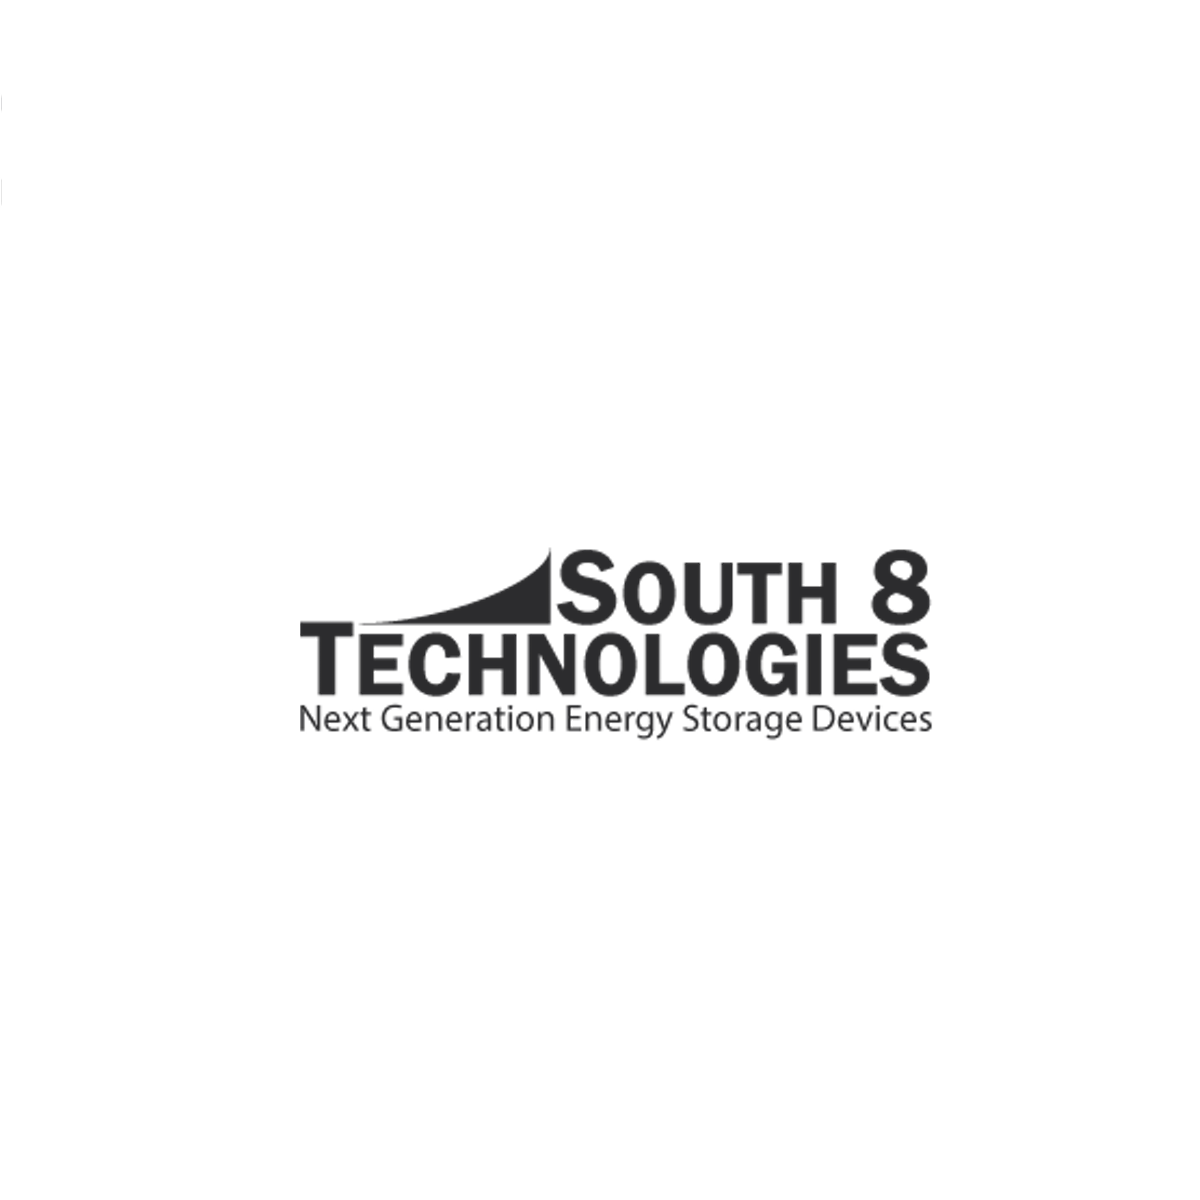 South 8 Technologies energy storage technology allows for increased energy density and exceptional performance at record low temperatures.